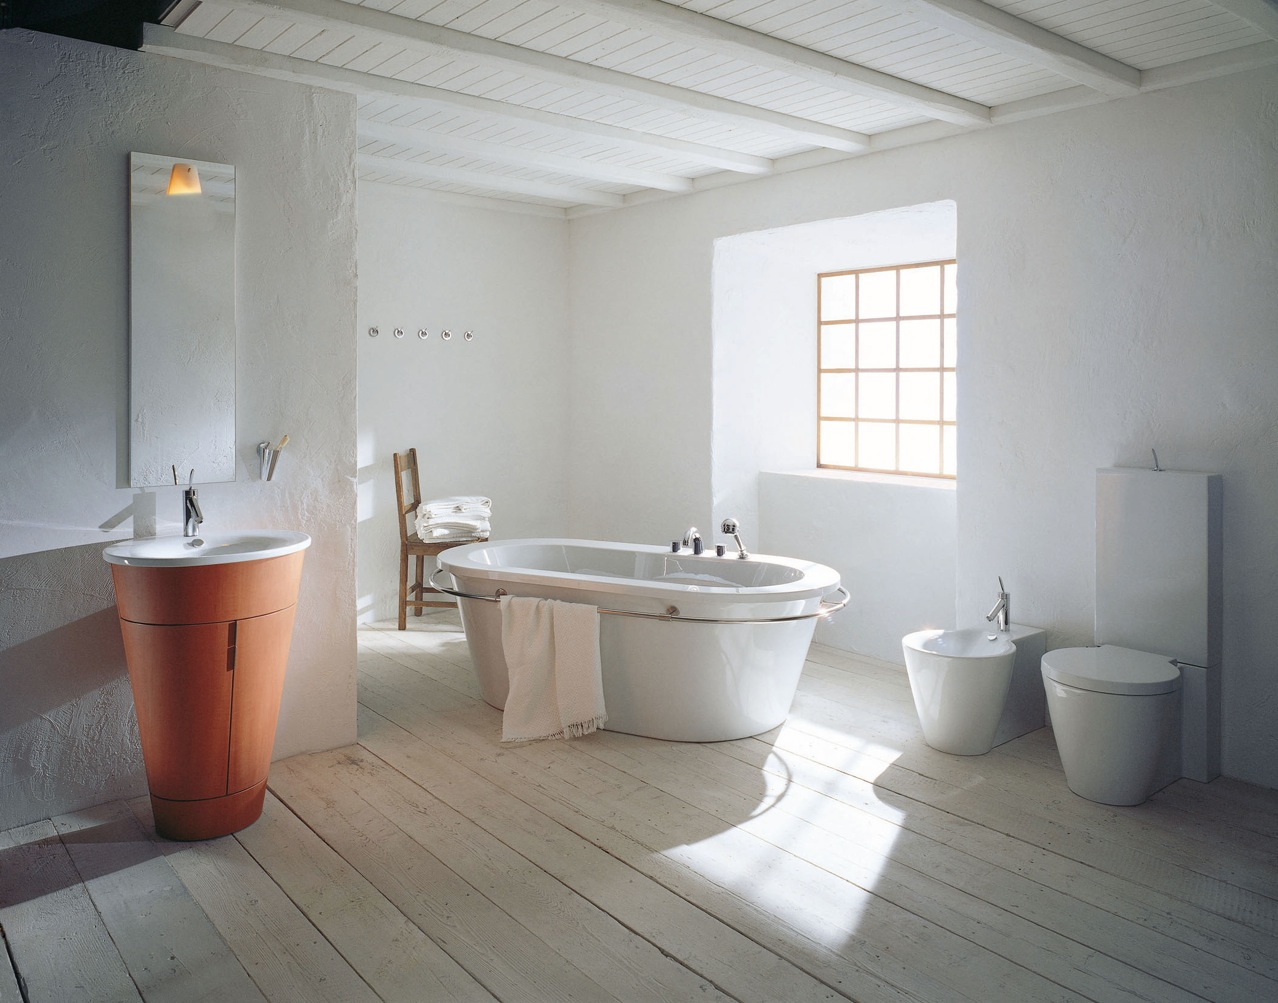 Philipe starck rustic modern bathroom decor - Decorated bathrooms ...